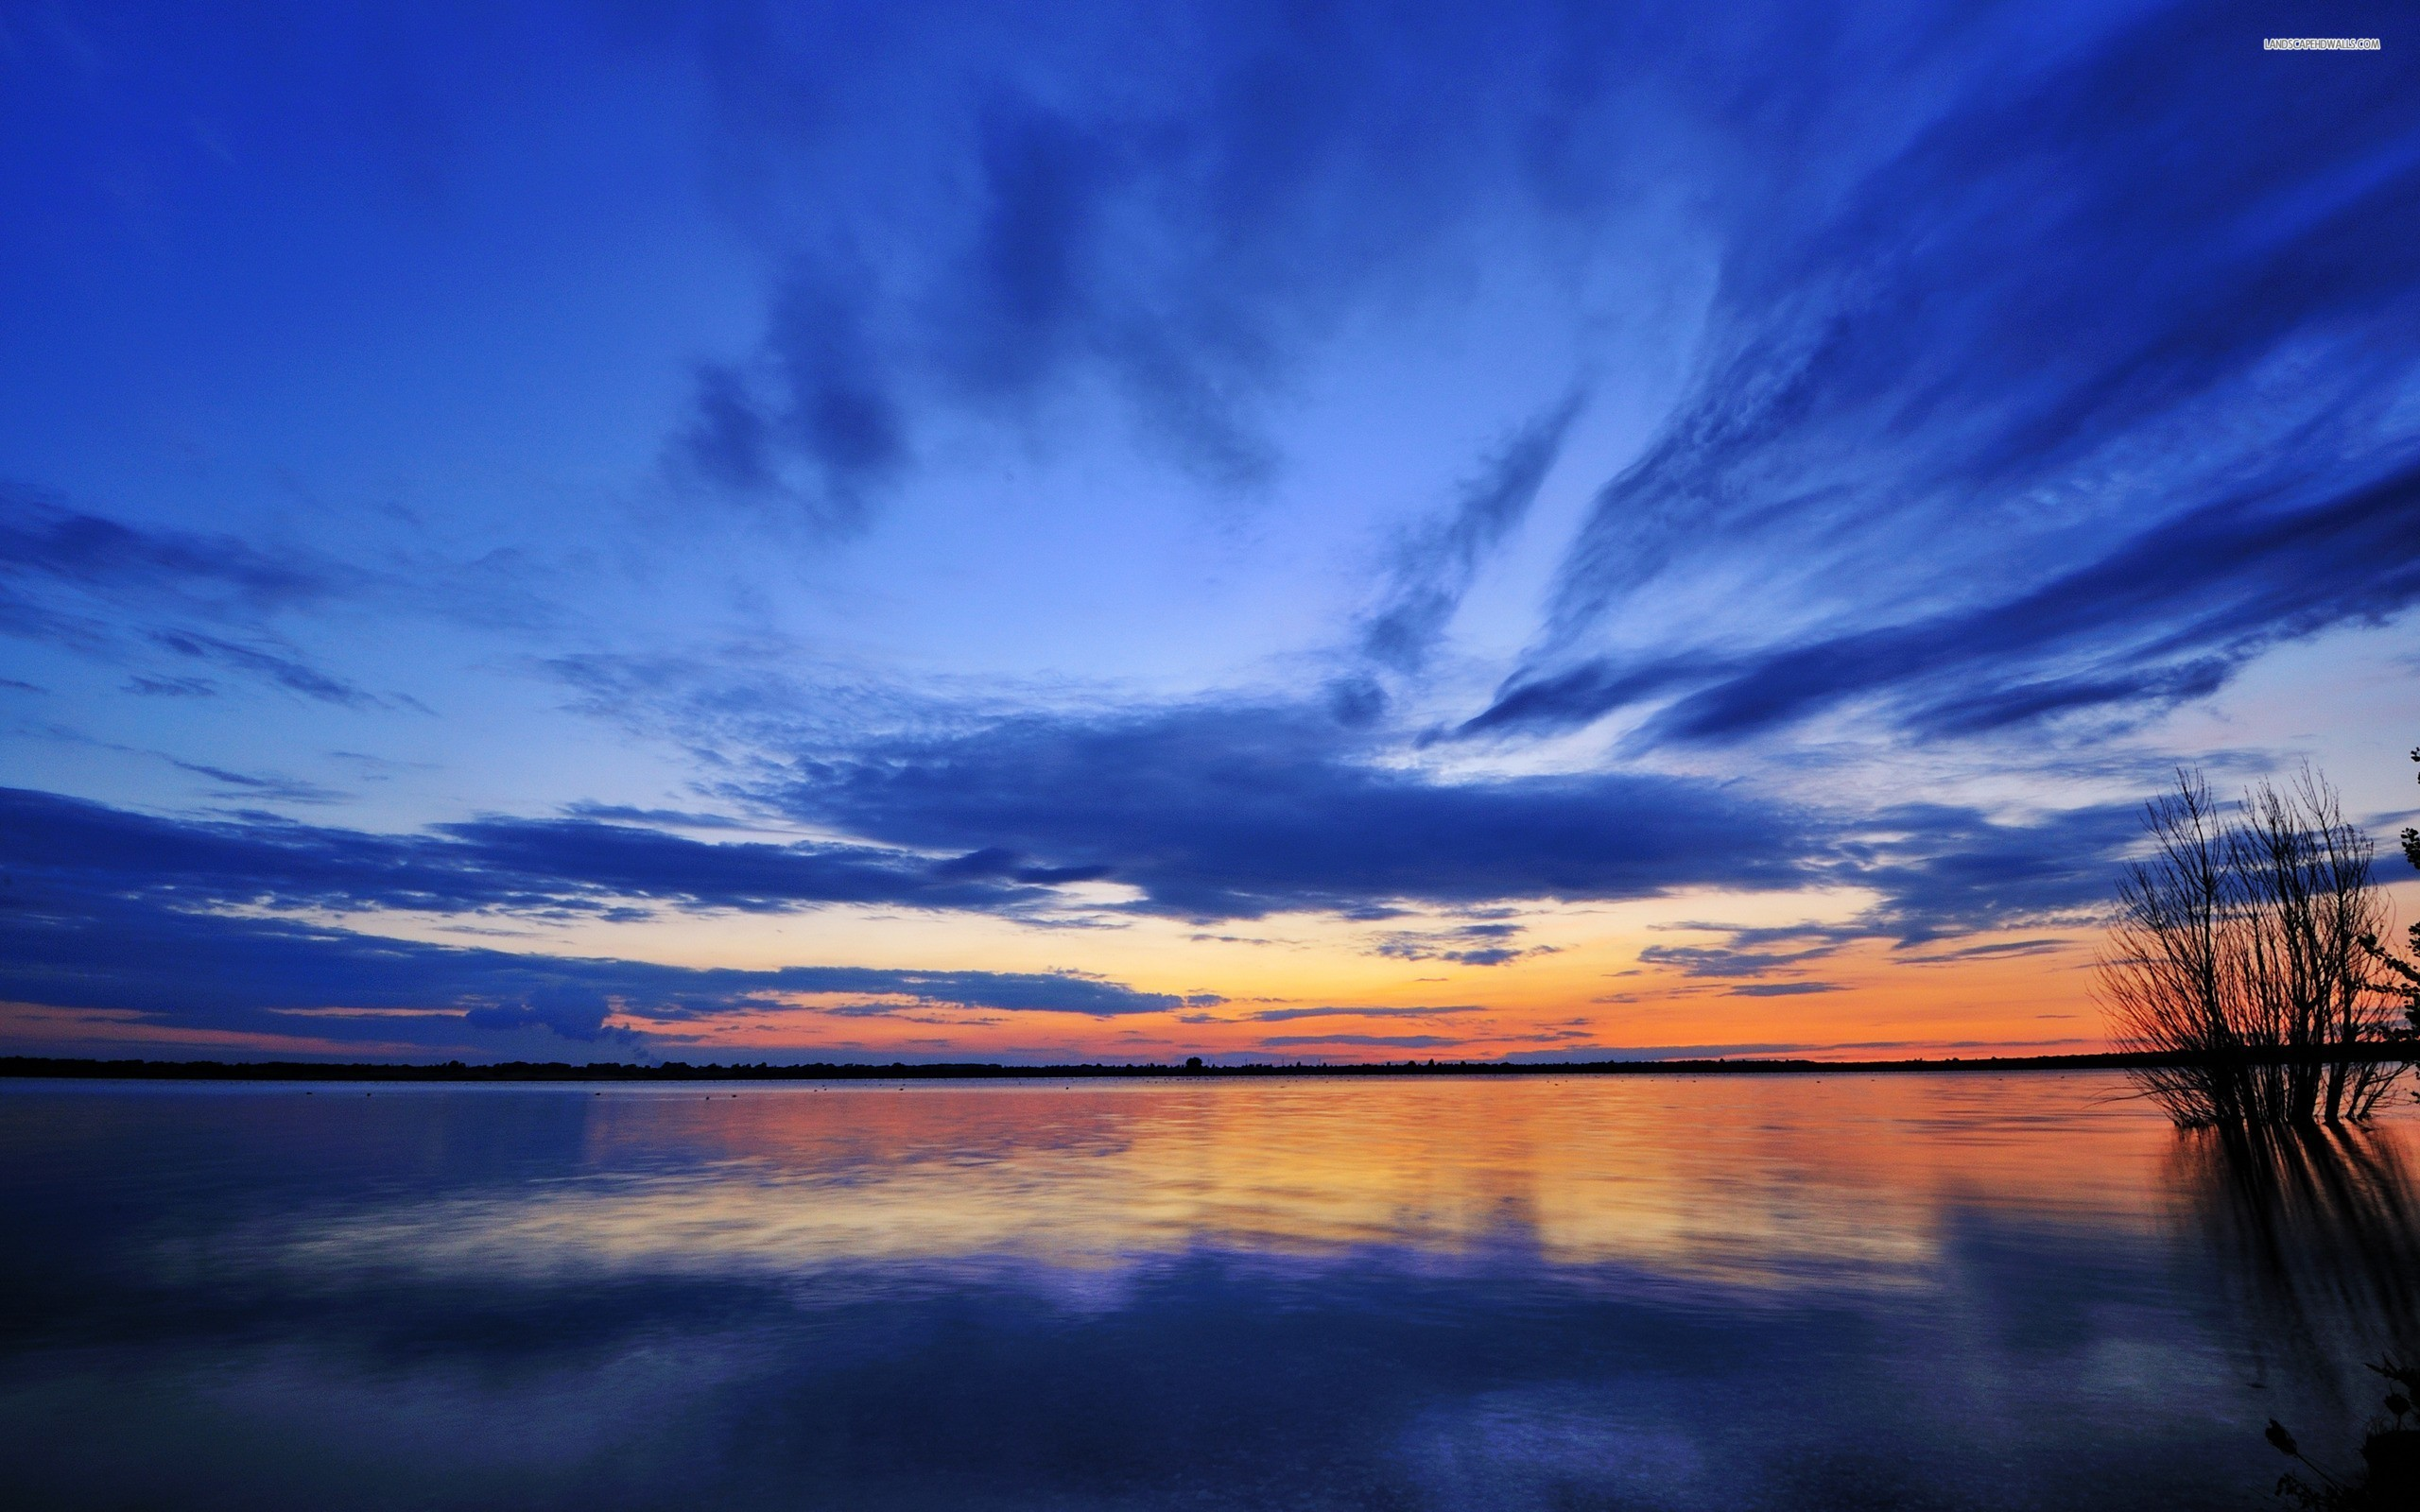 Lake at Dawn wallpaper 2560x1600 Original ...